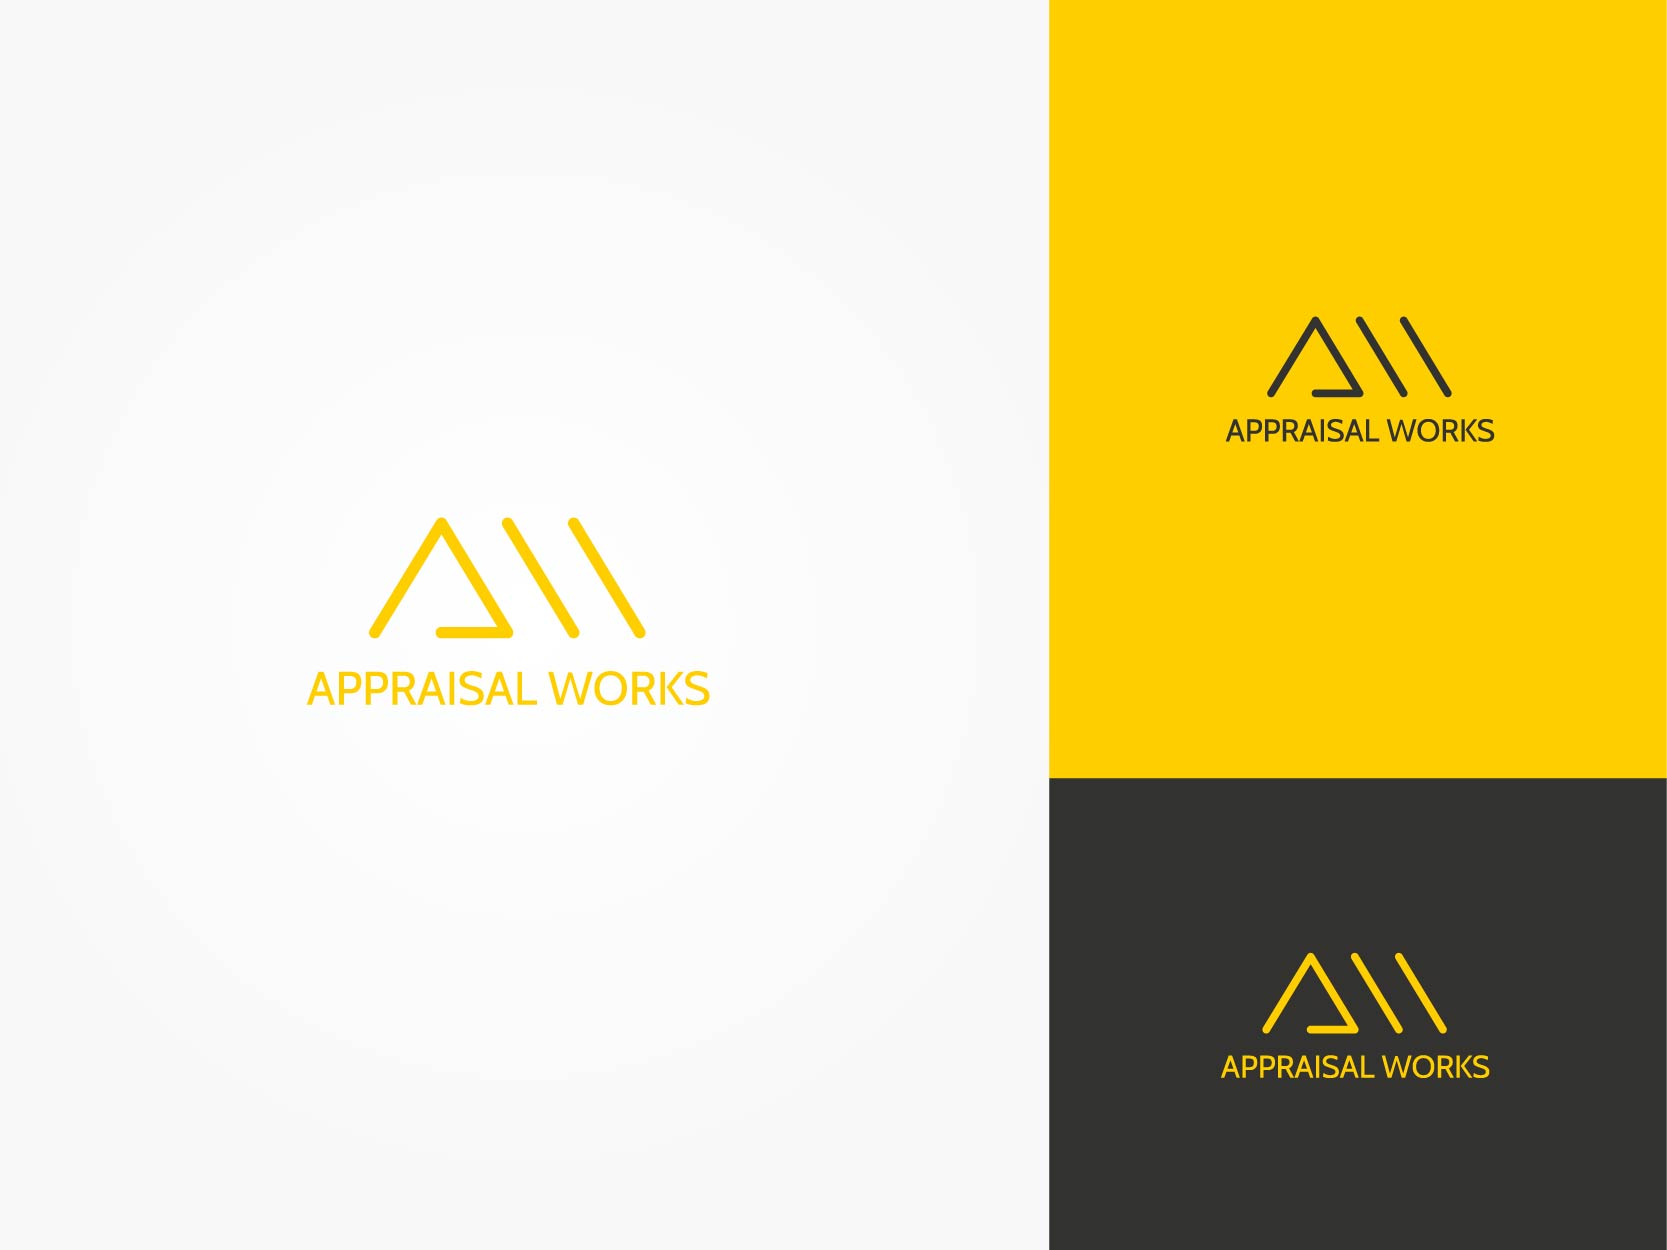 Logo Design by Osi Indra - Entry No. 26 in the Logo Design Contest Appraisal Works Logo Design.